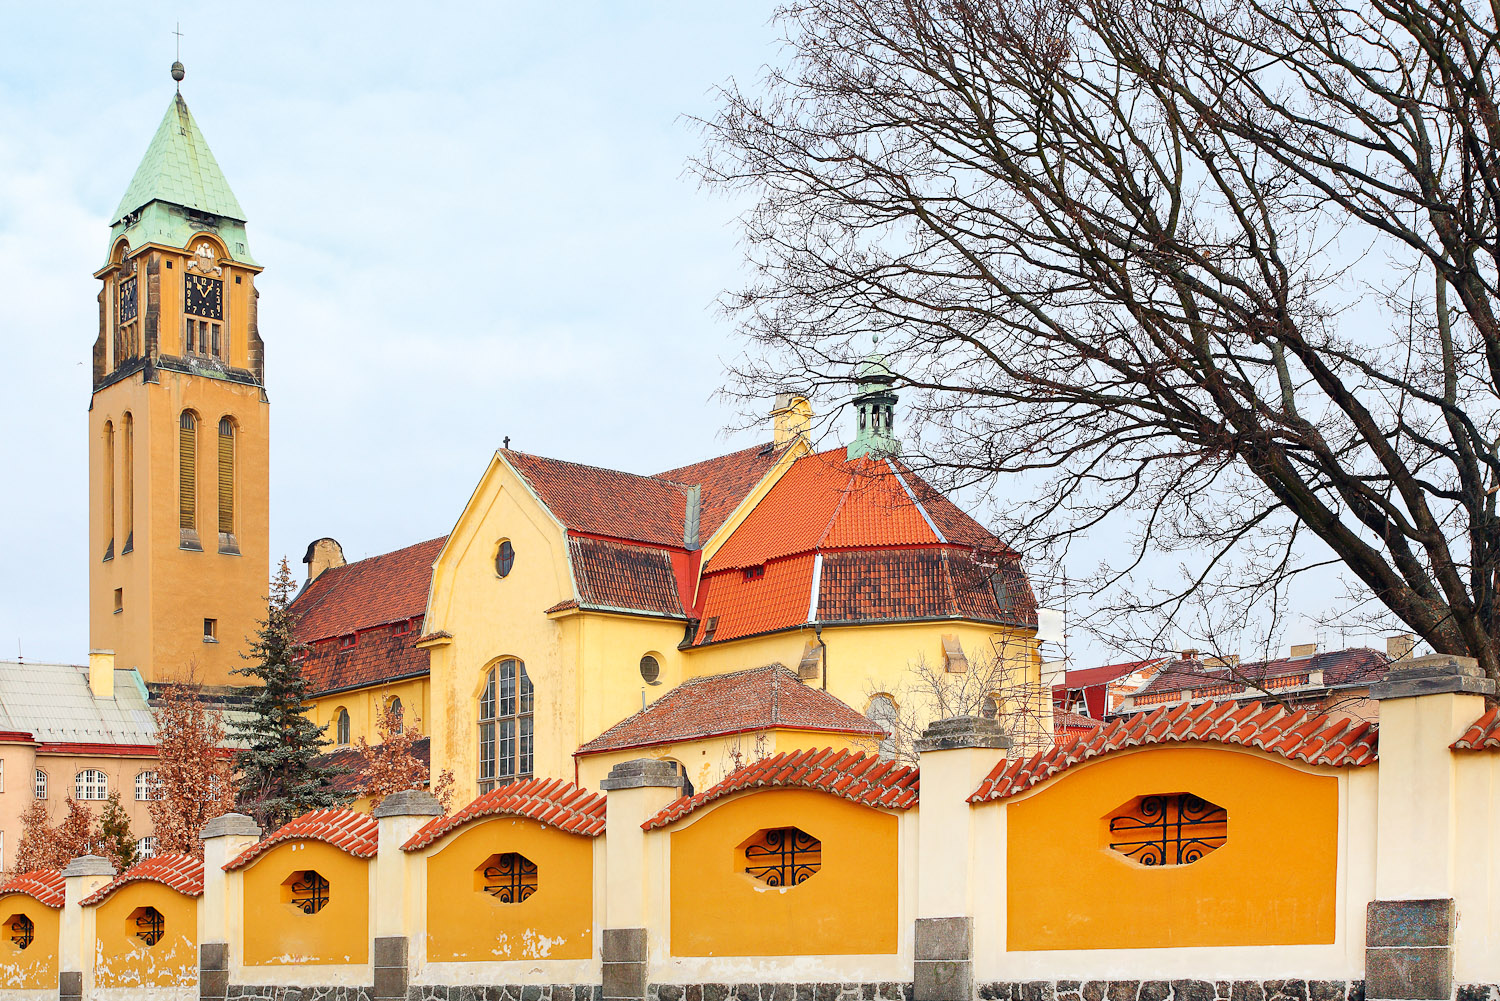 Franciscan Monastery in Pilsen, Czech Republic.